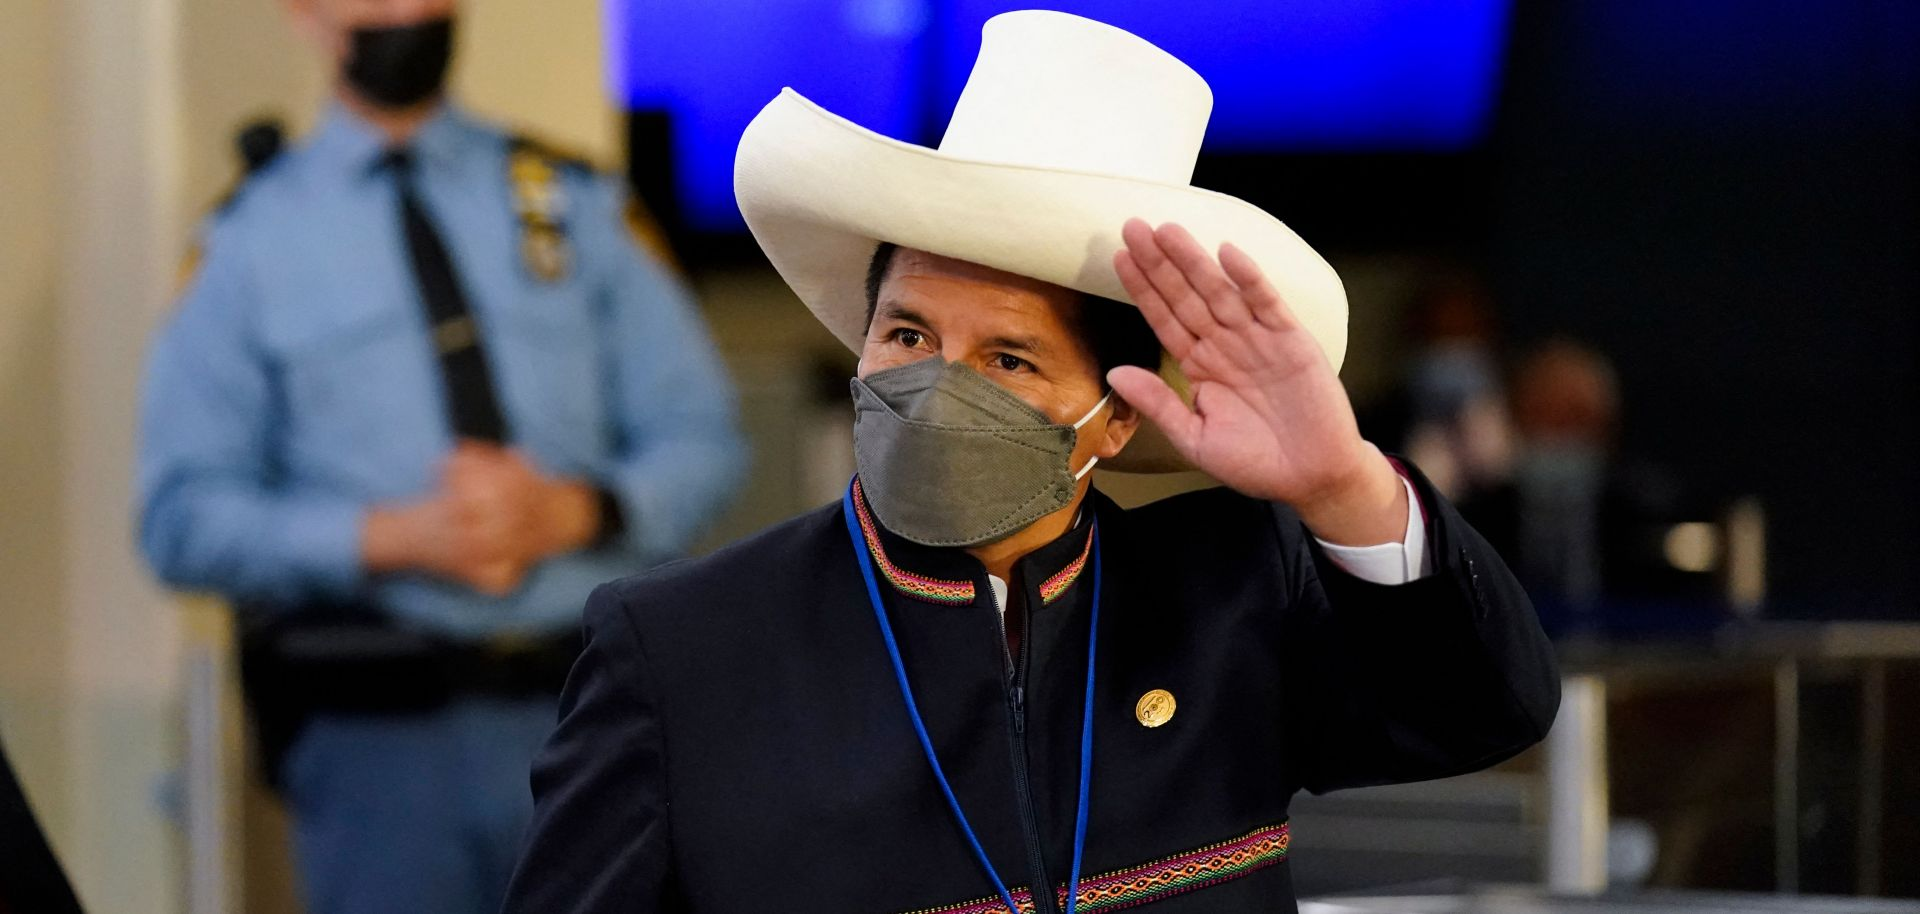 Peruvian President Pedro Castillo arrives at the 76th session of the U.N. General Assembly on Sept. 21, 2021, in New York.